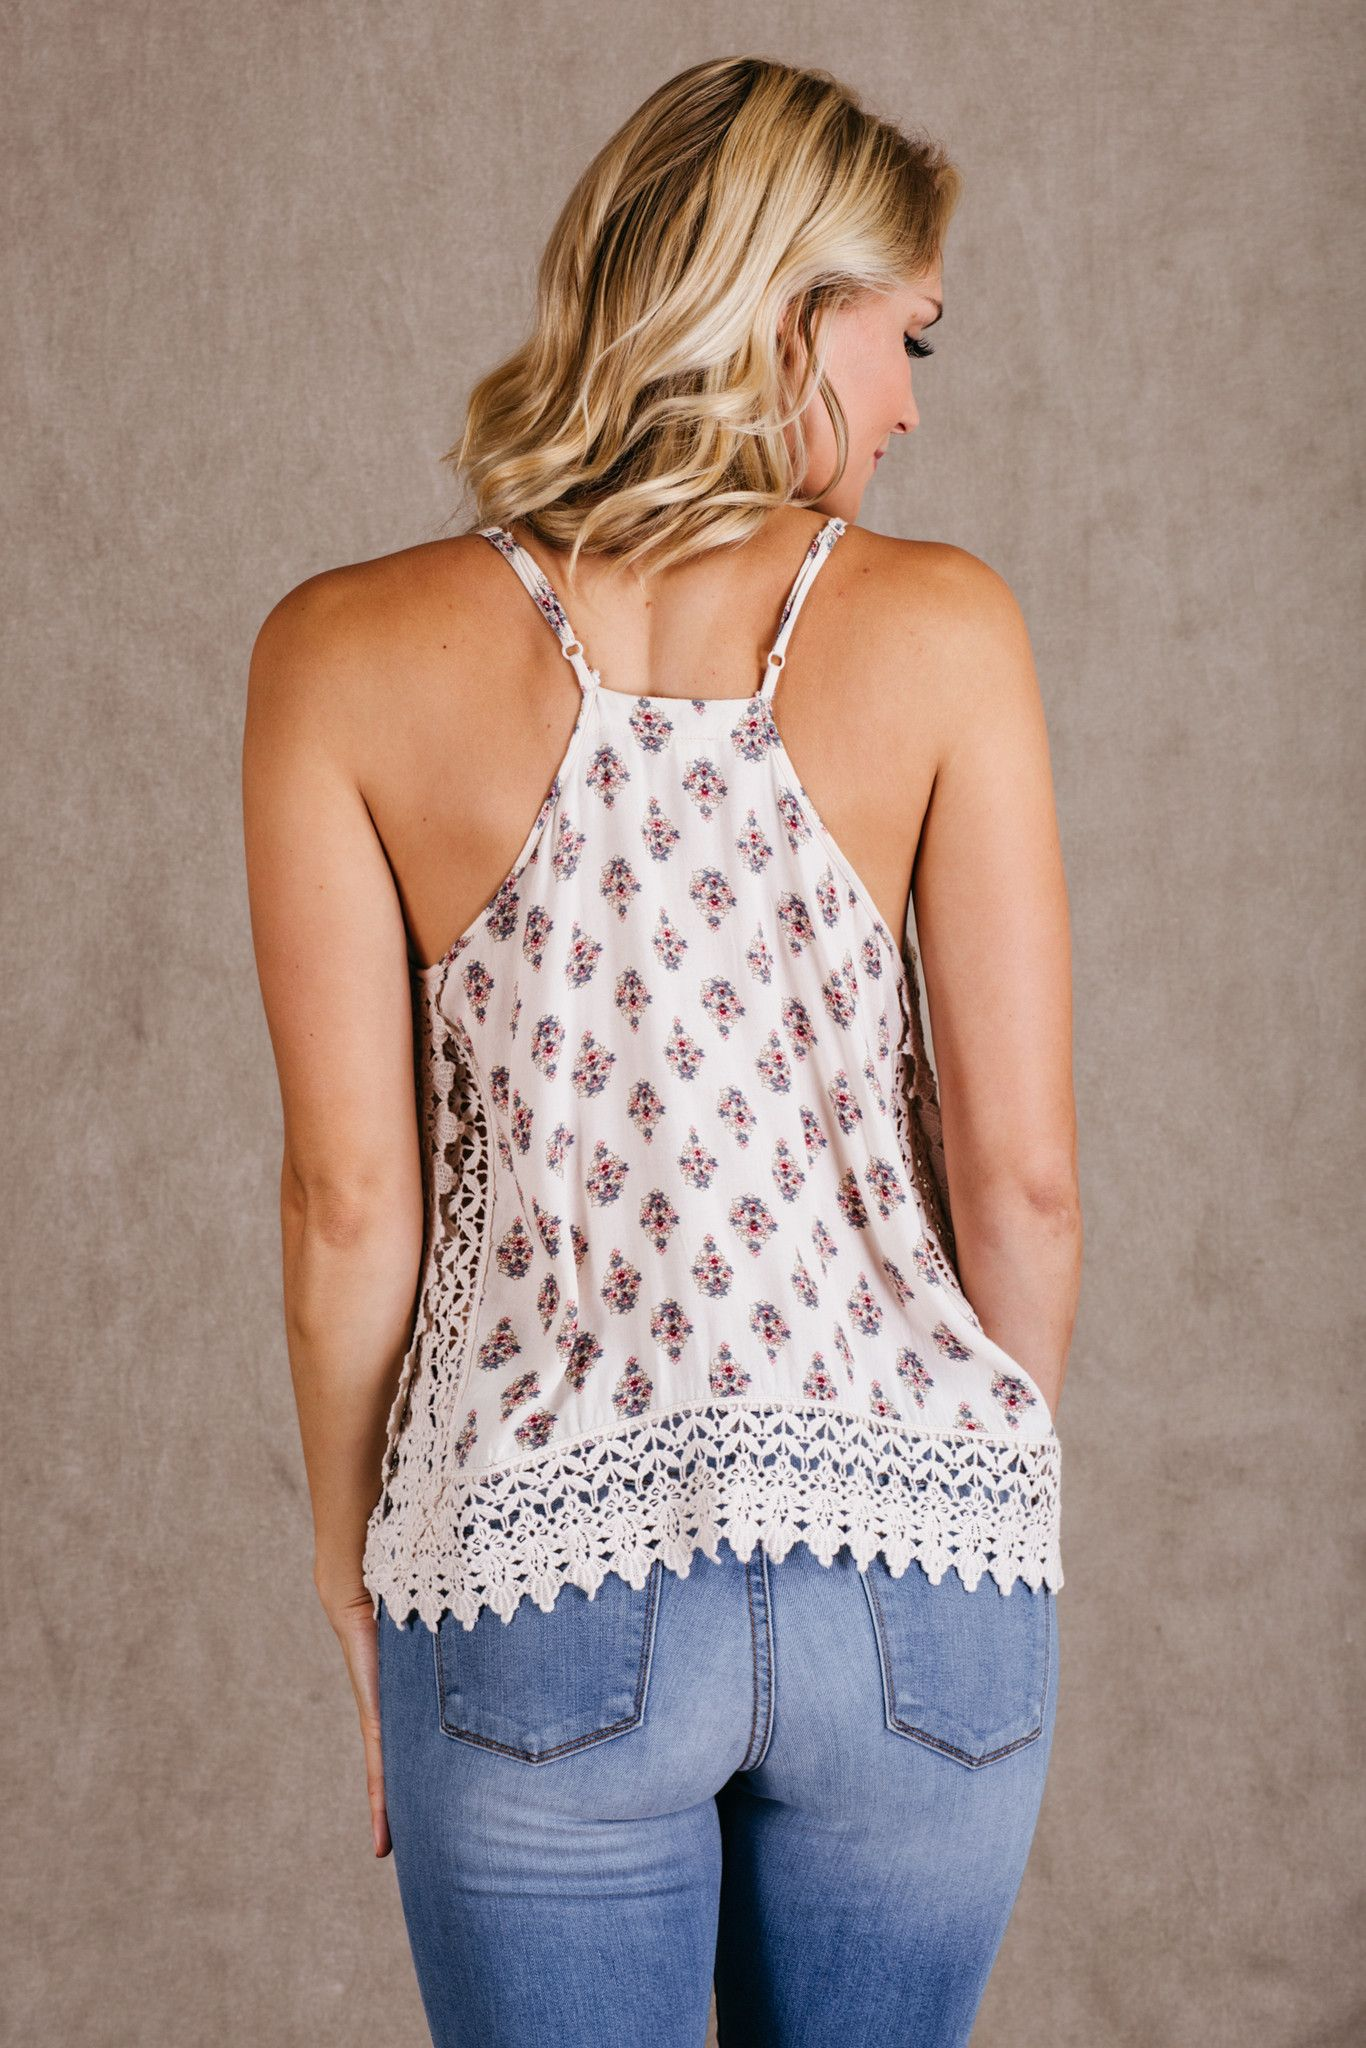 ropa bonita Summer Fashion, Lace Tops, Tank Top Outfits, Summer Outfits, Floral…